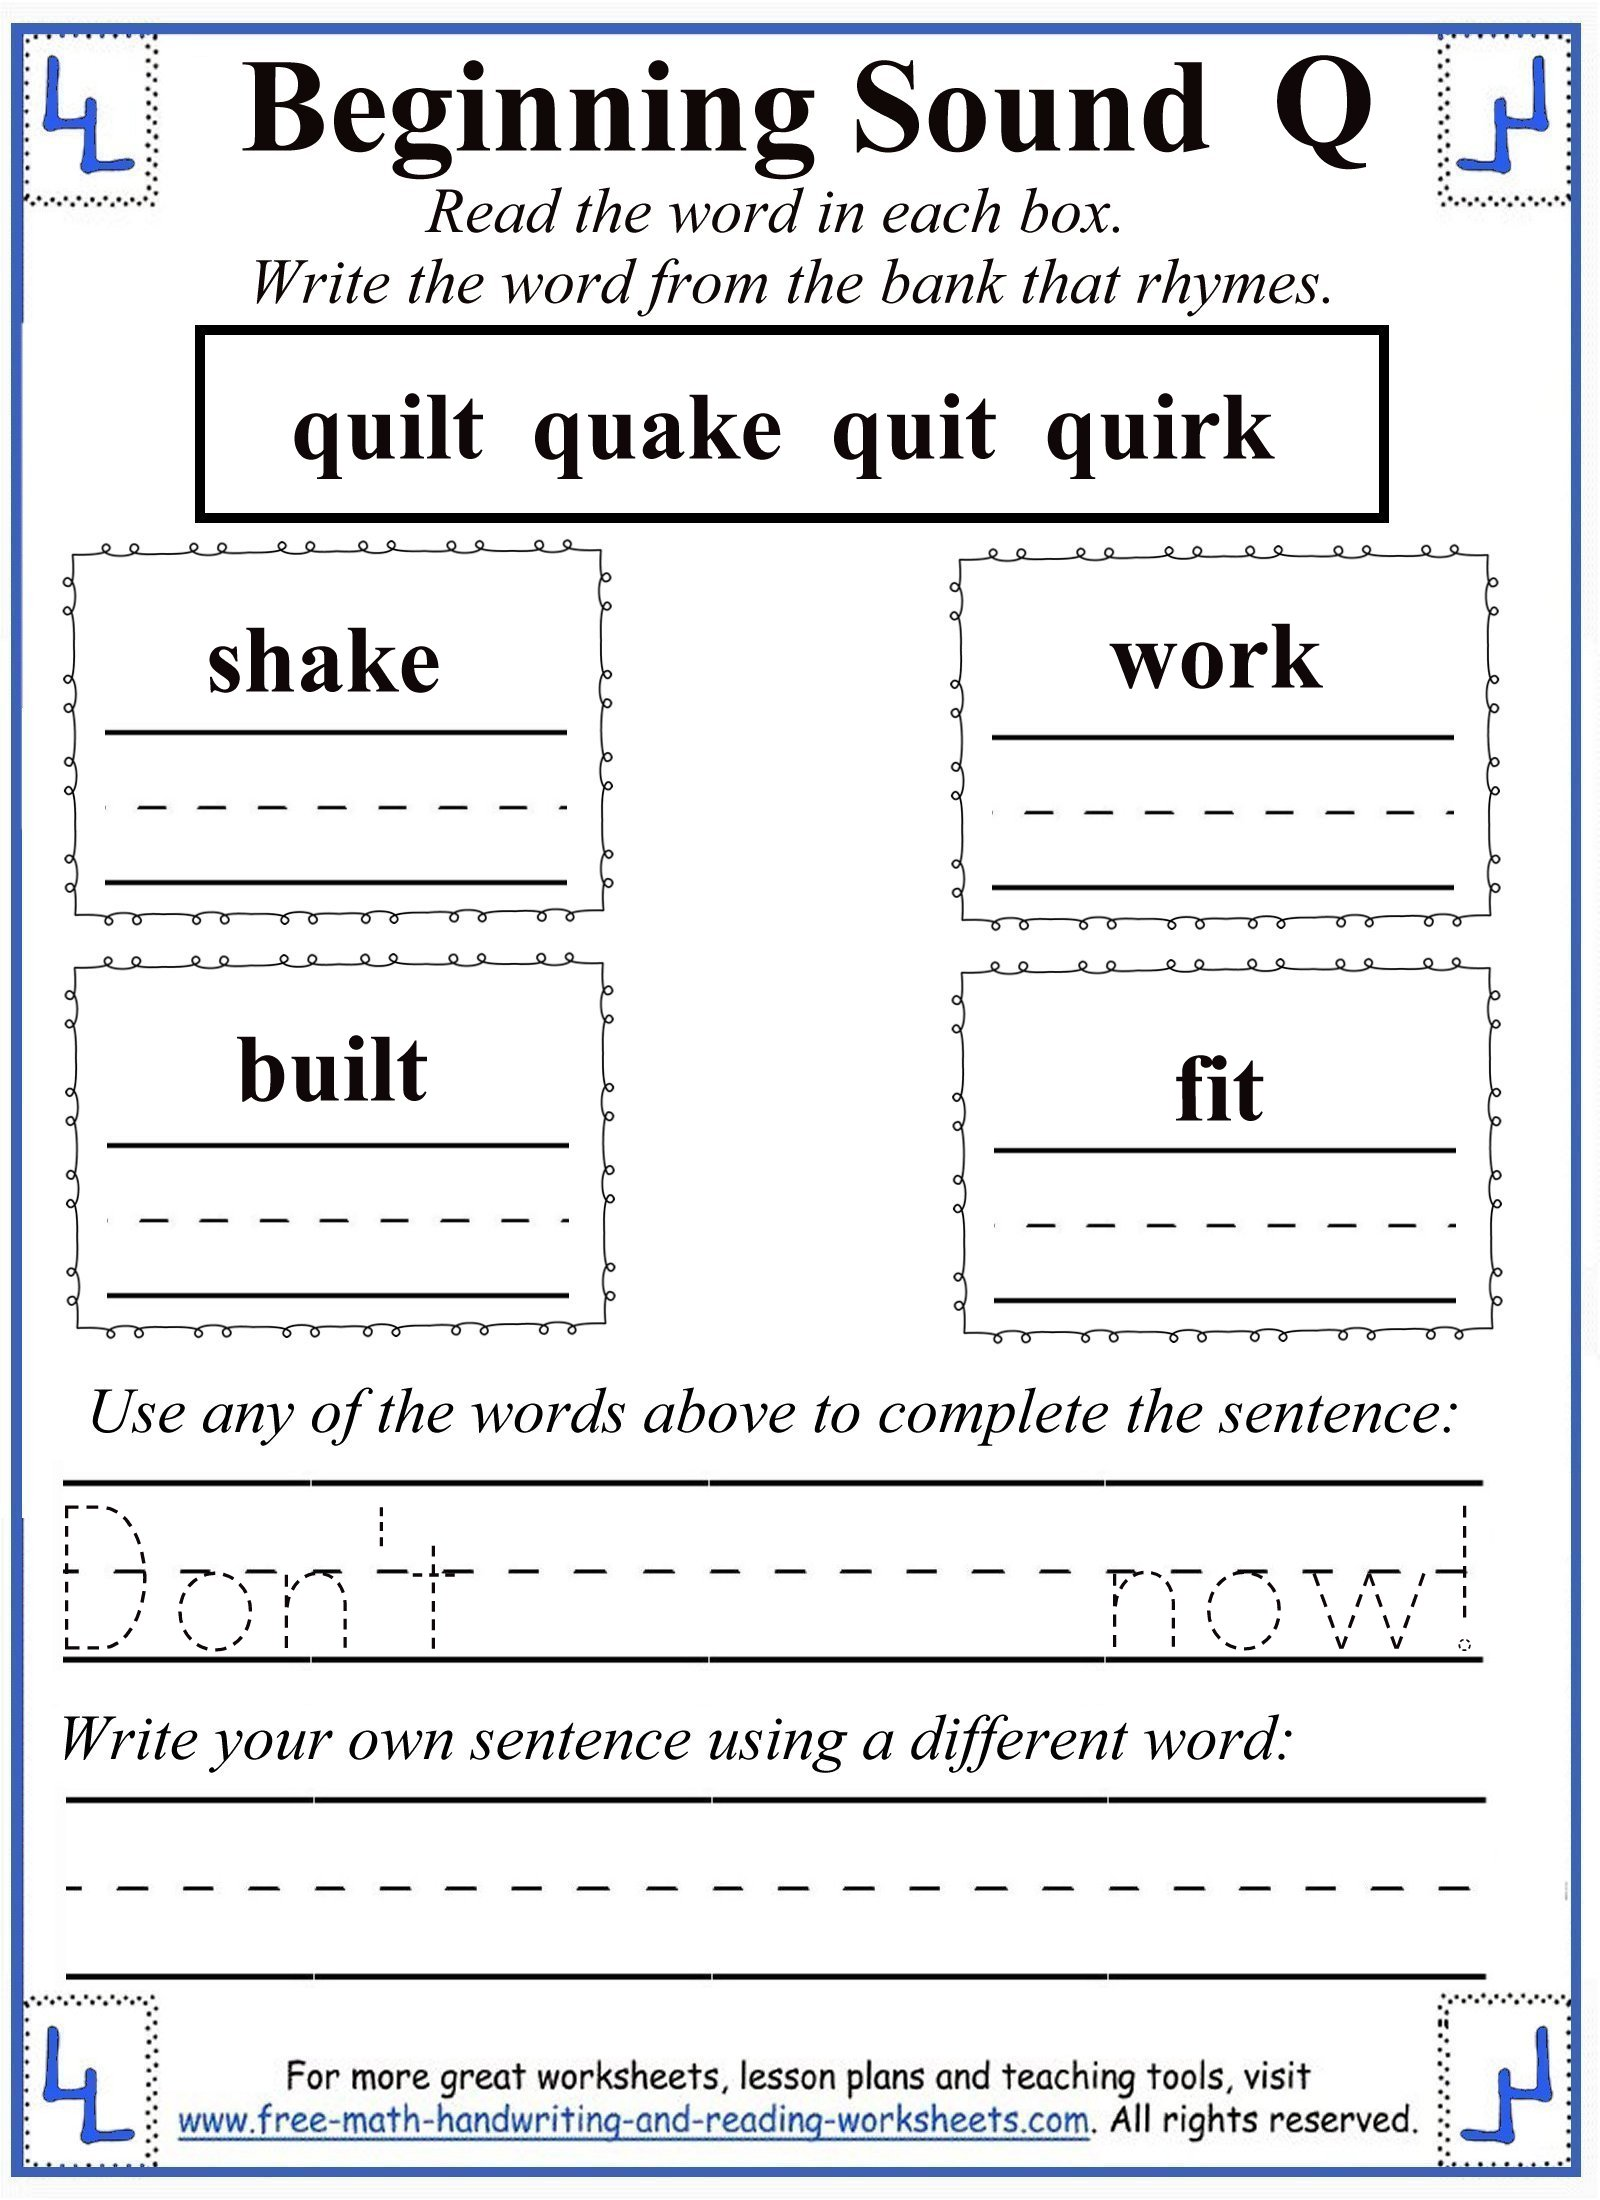 Letter Q Worksheets – Rhyming Worksheets for Kindergarten Cut and Paste